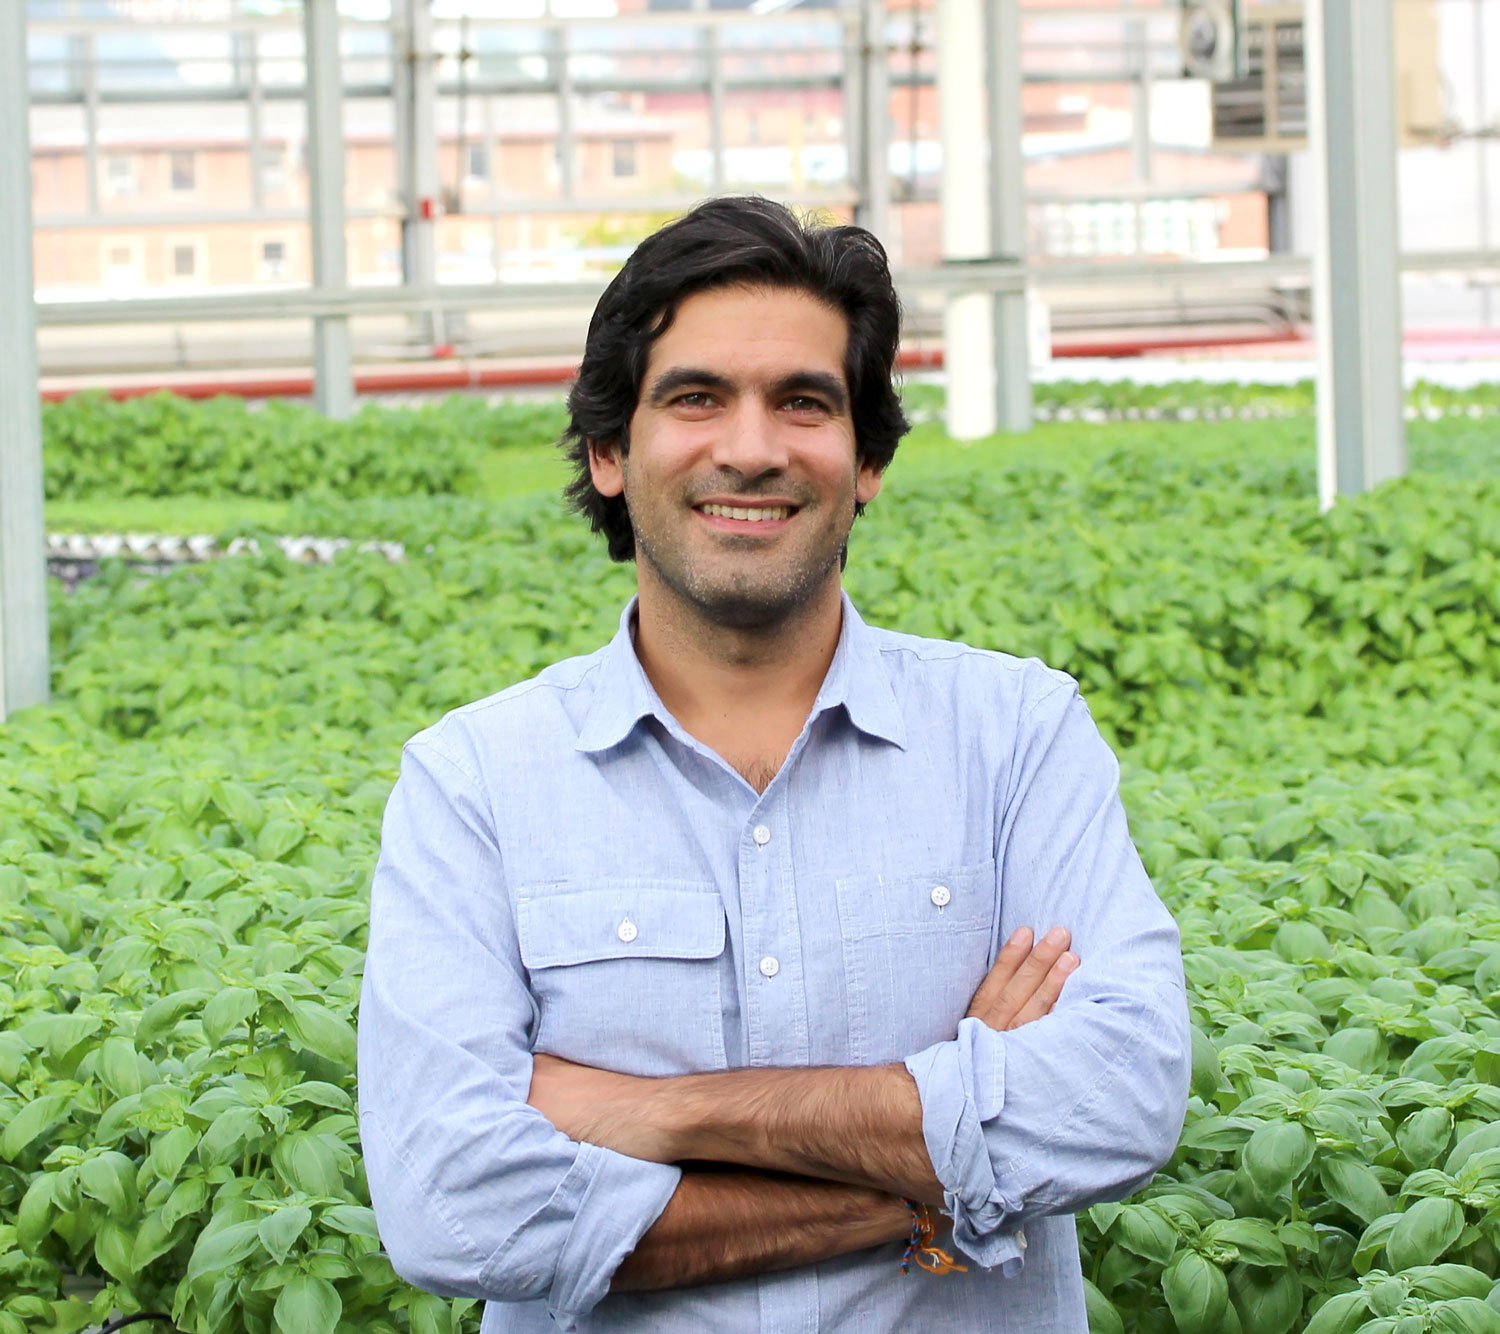 Viraj Puri, the co-founder of Gotham Greens, posing for a picture.